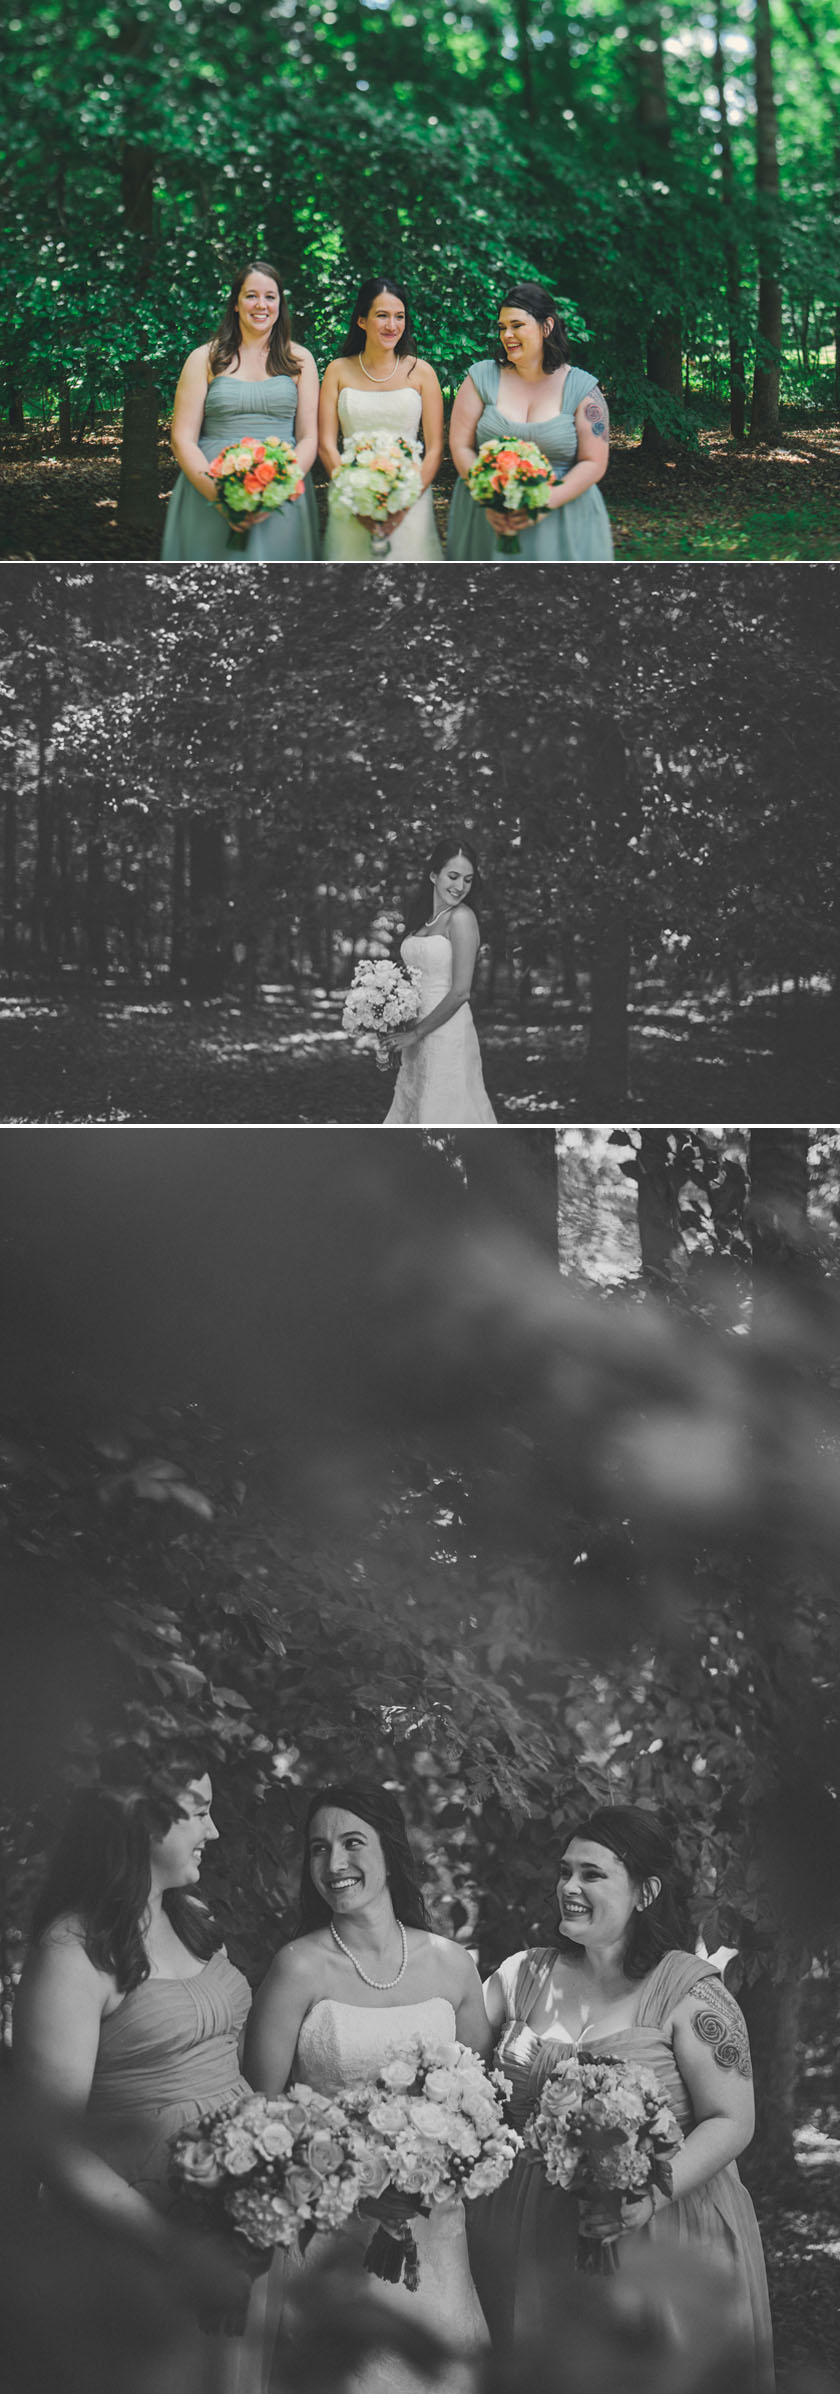 Connectiopn_Photography_Raleigh_NC_Wedding_Photographer_11